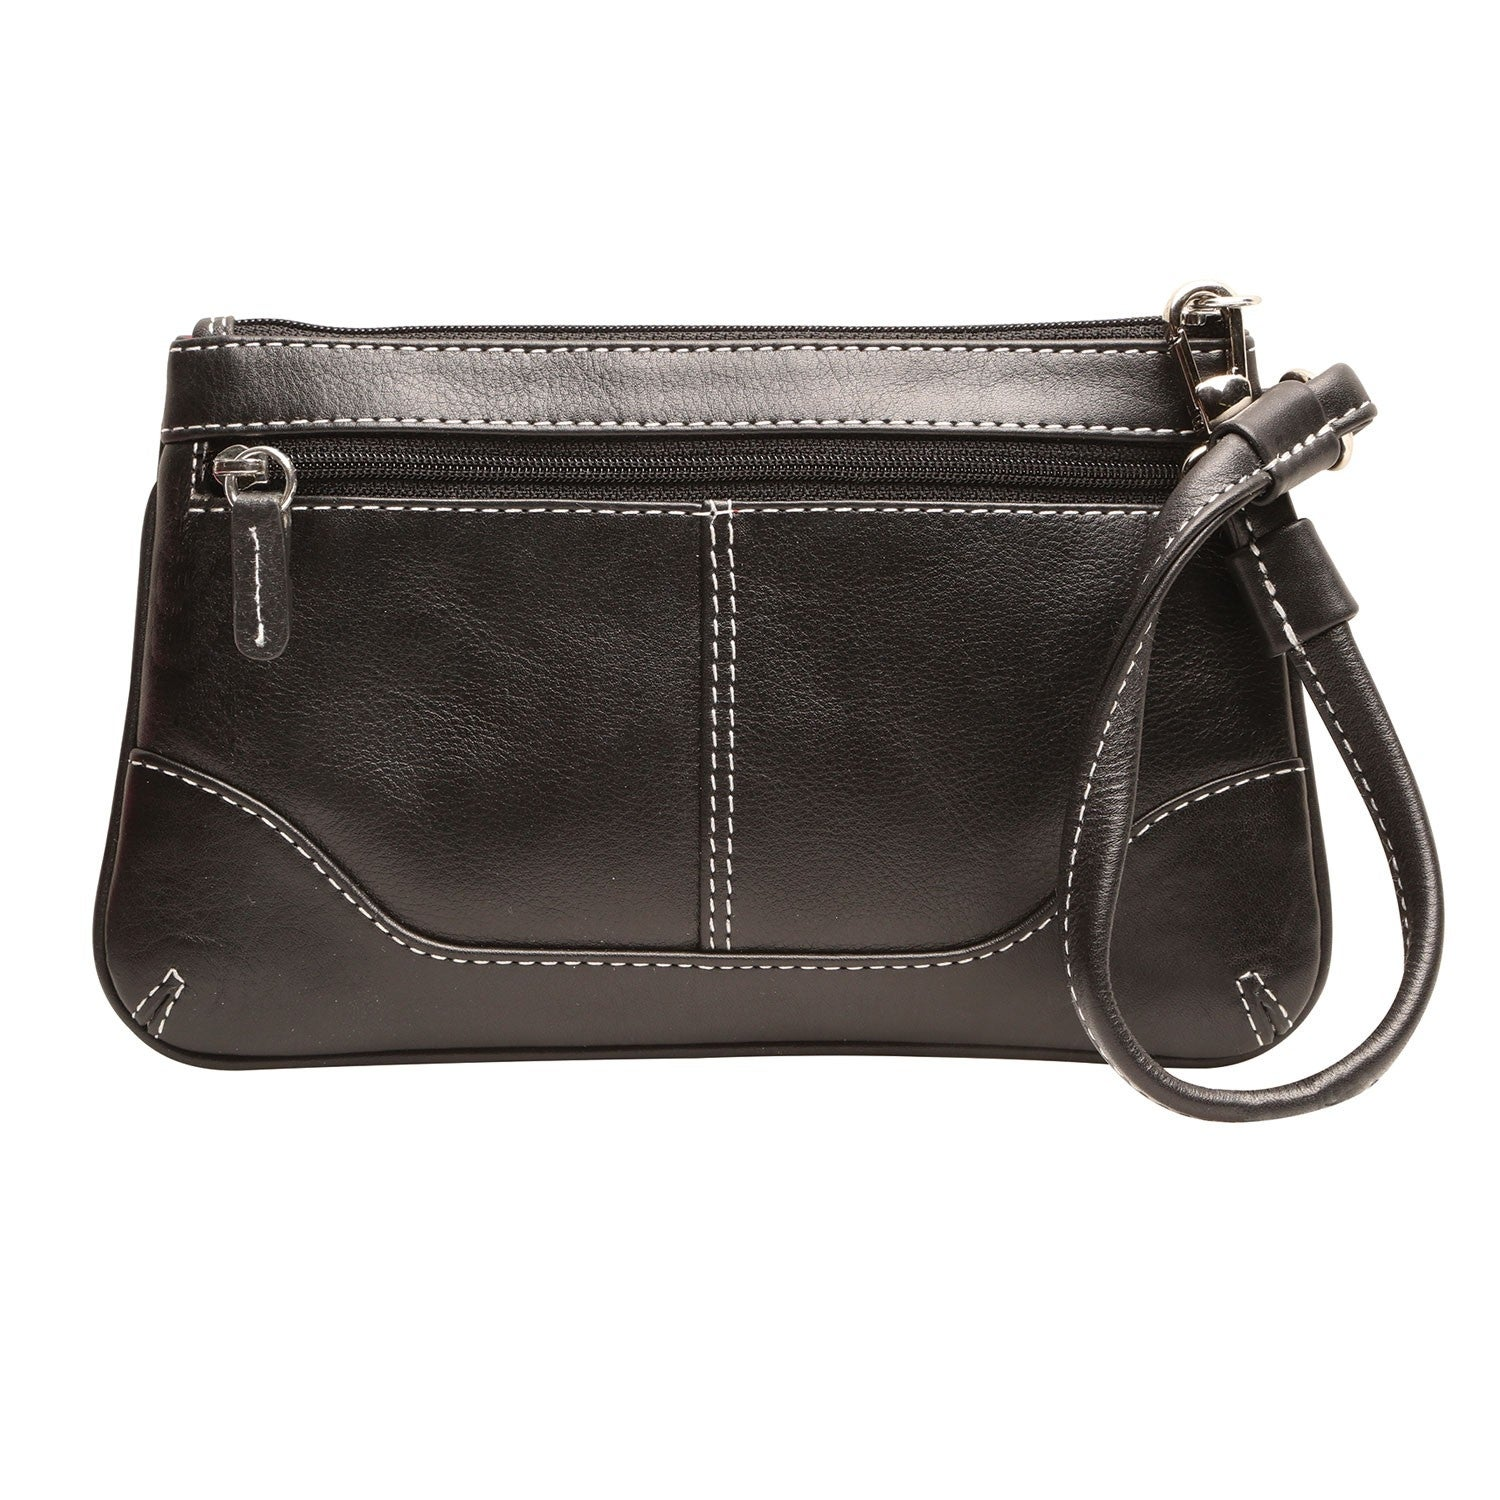 Ili Women S Sched Leather Wristlet Purse Zip Top Handbag With E Size On Free Shipping Orders Over 45